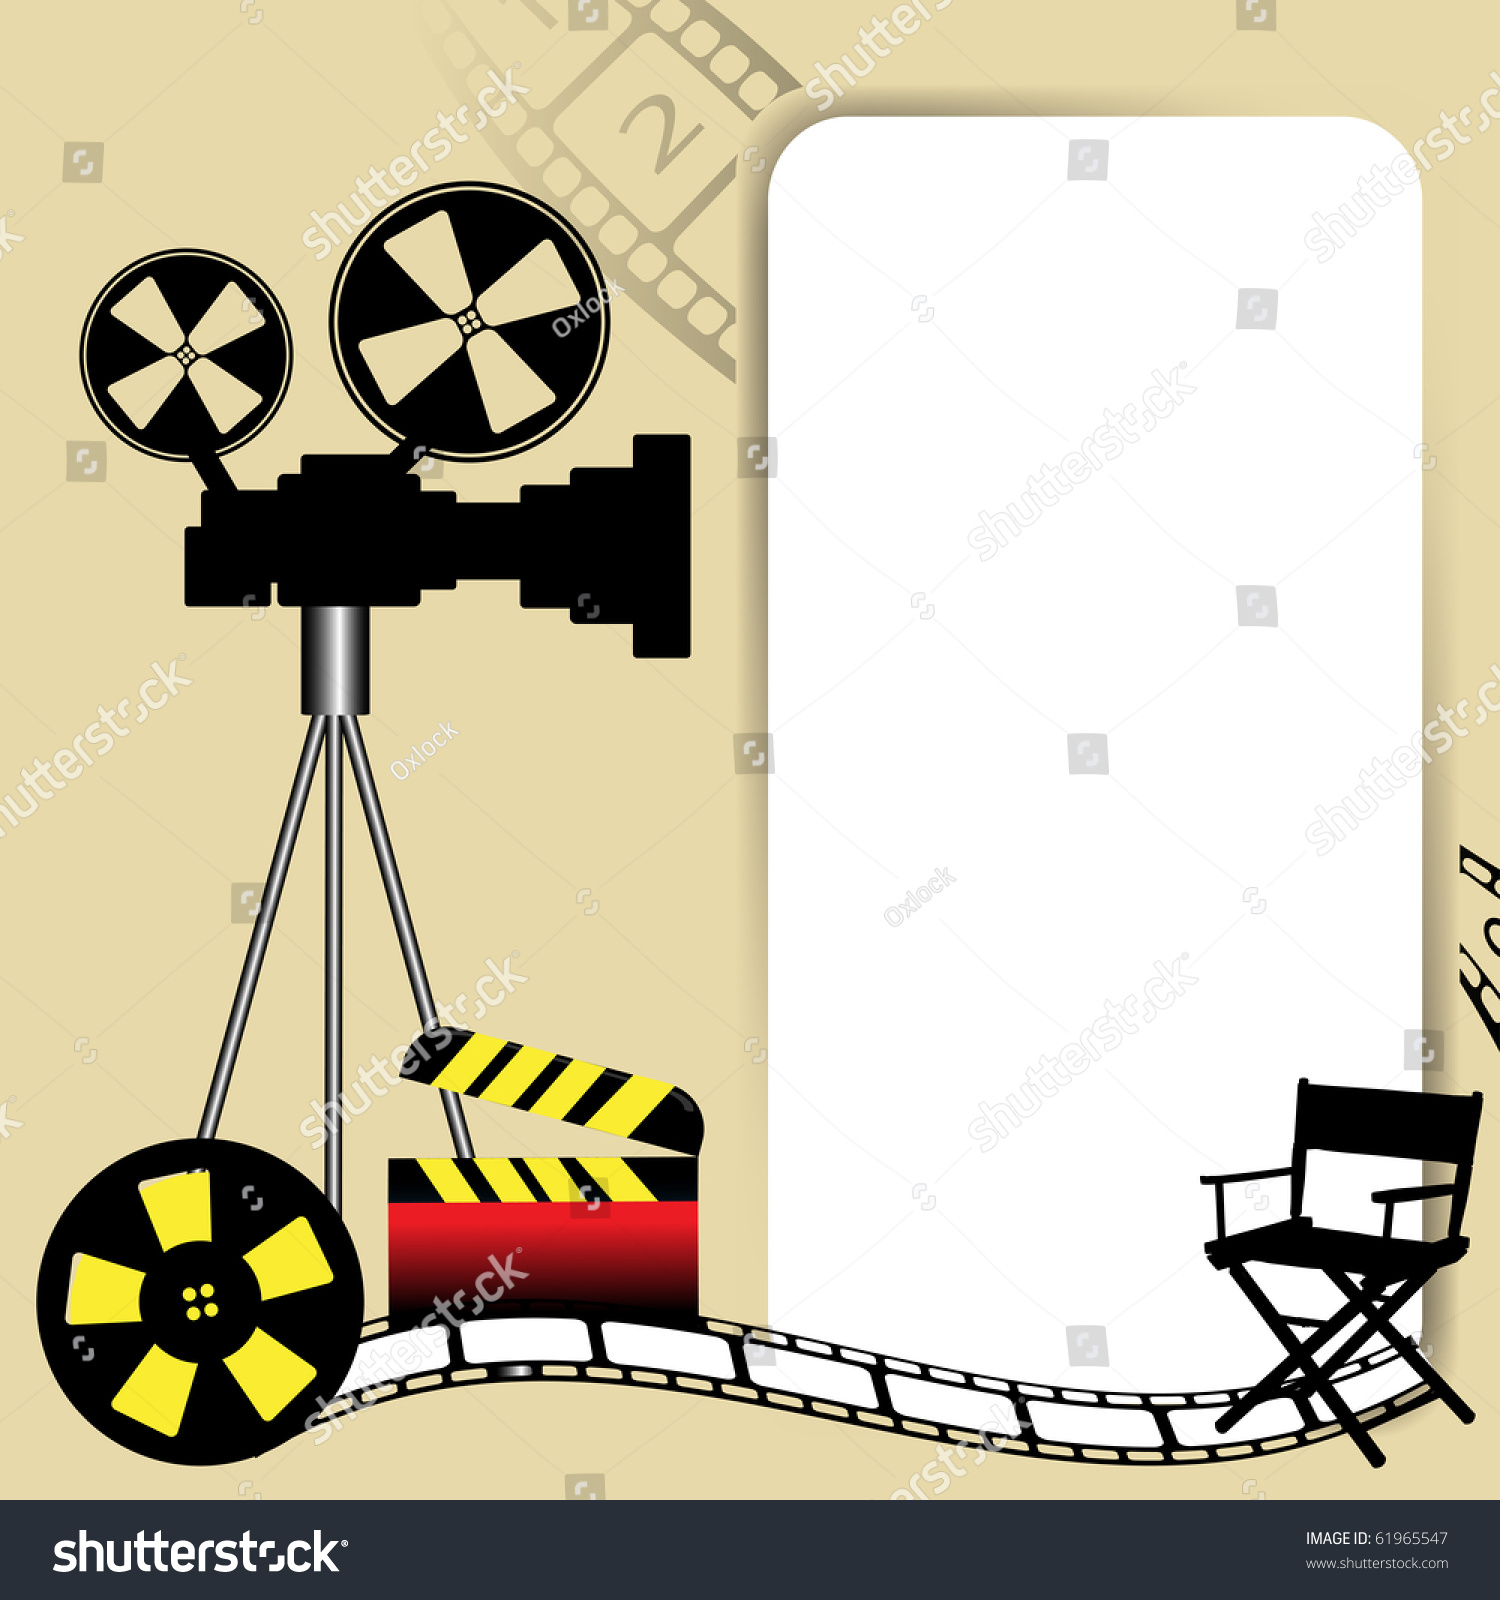 Movie reels clip art hollywood movie reels clip art jeuxipadfo Image collections